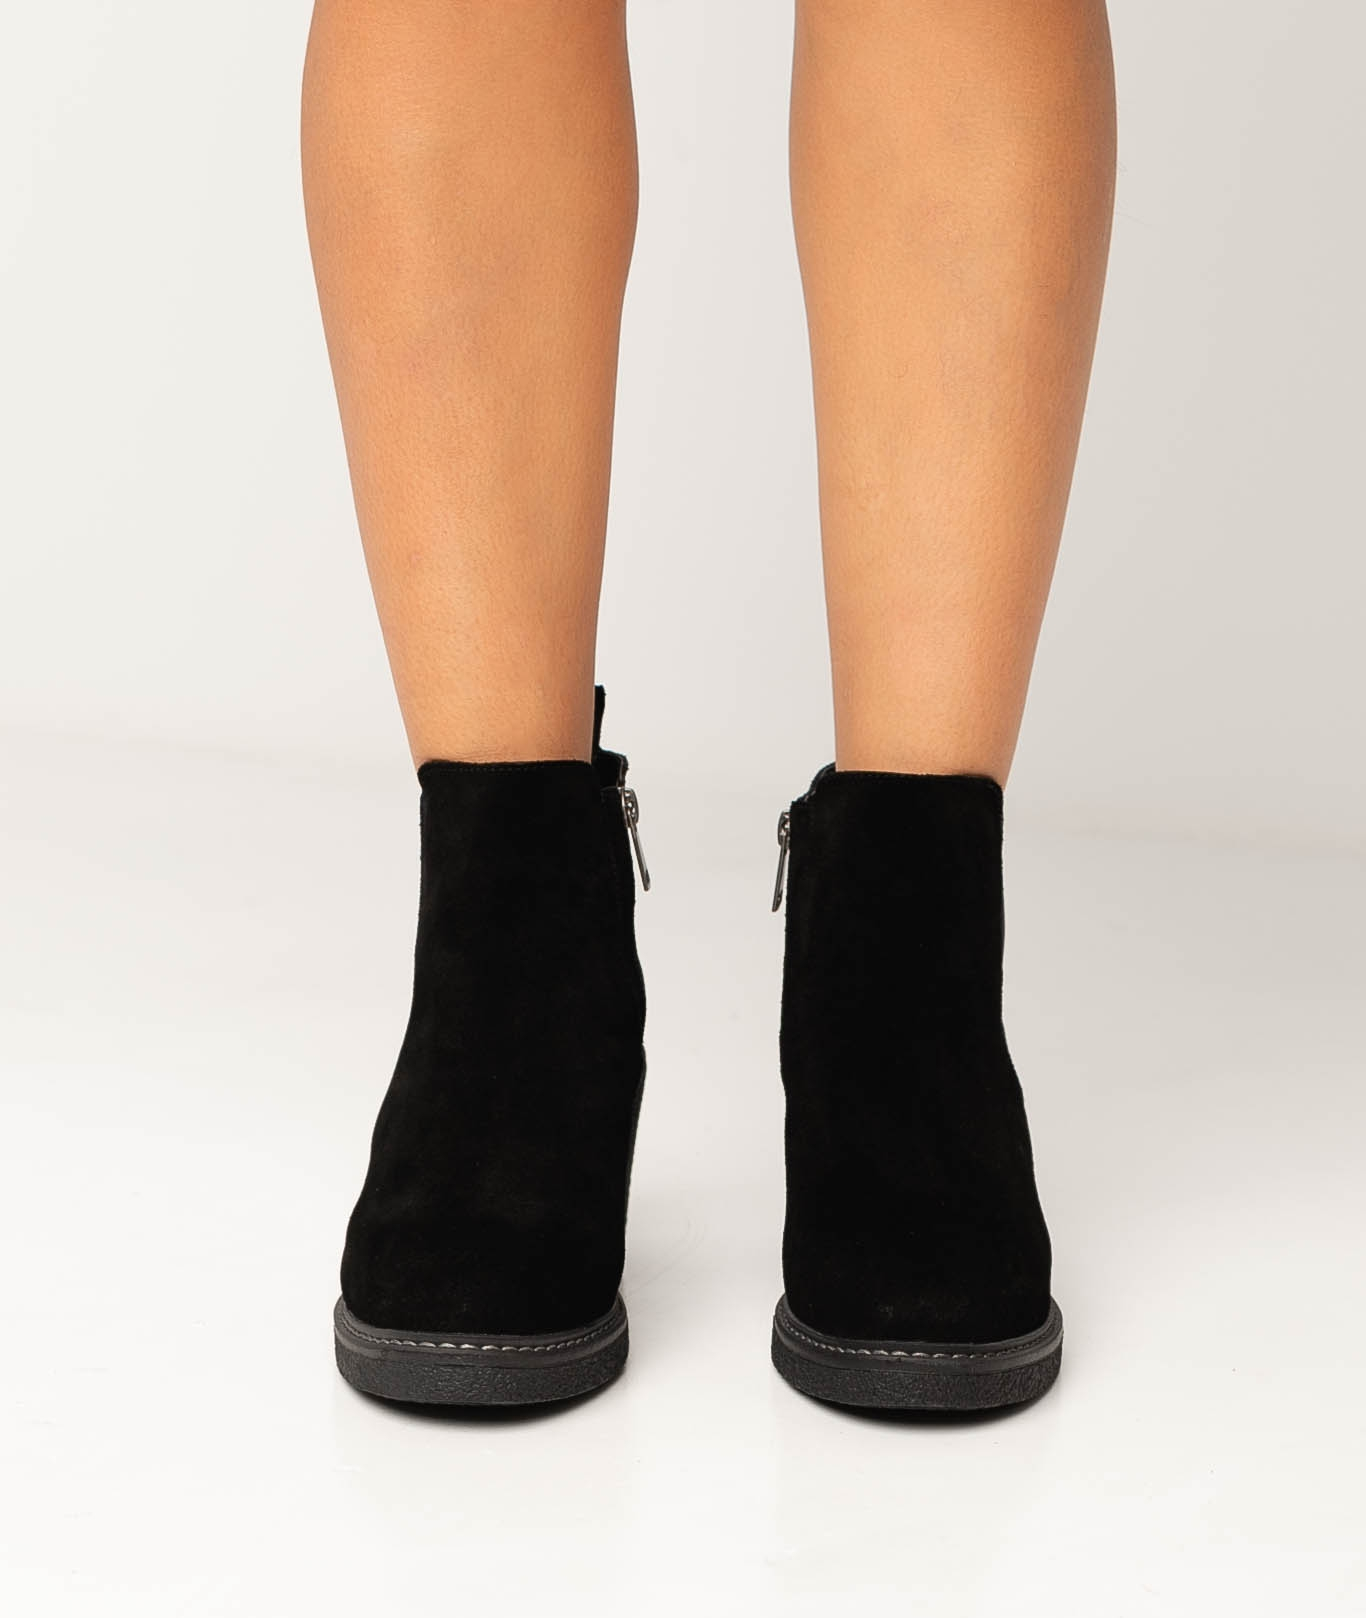 MELOR LOW BOOT - BLACK